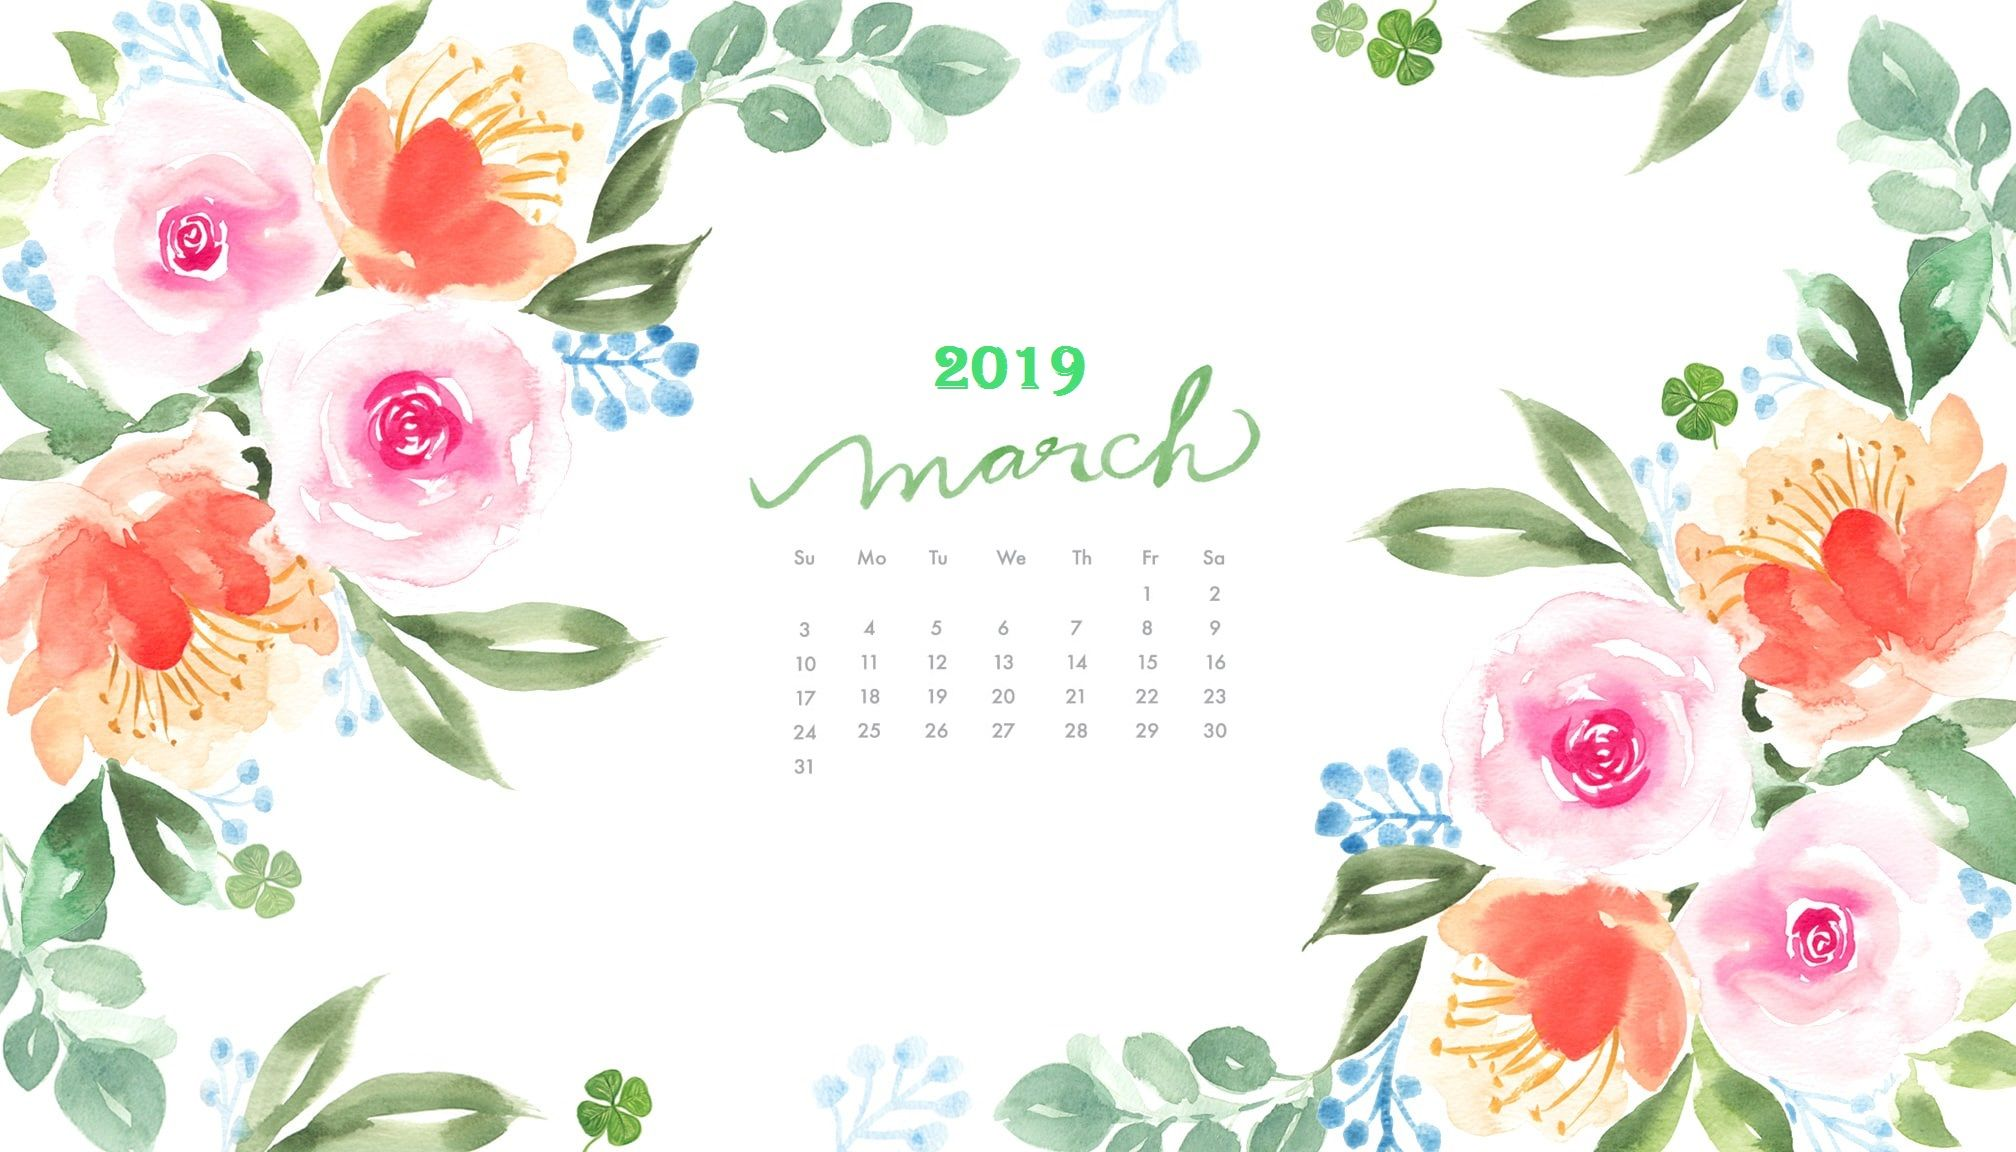 March 2019 Watercolor Calendar Wallpaper Calendar wallpaper 2016x1152